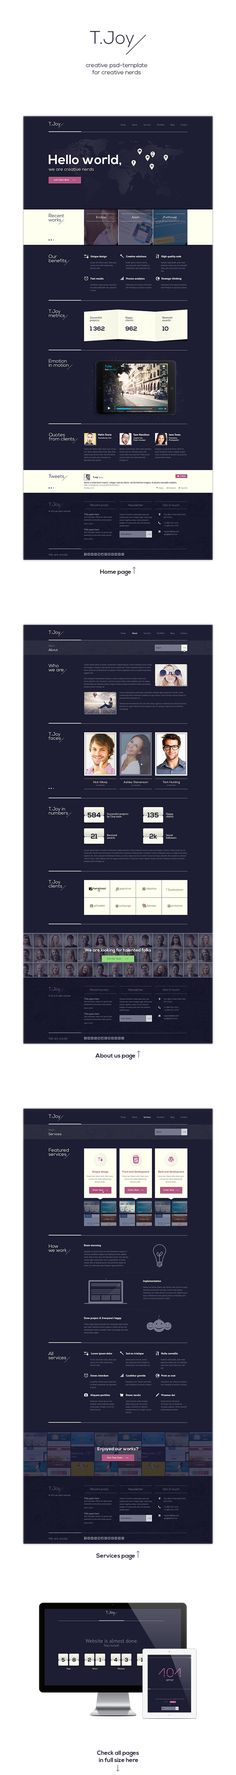 T.Joy - Flat Multipurpose PSD Template on Behance